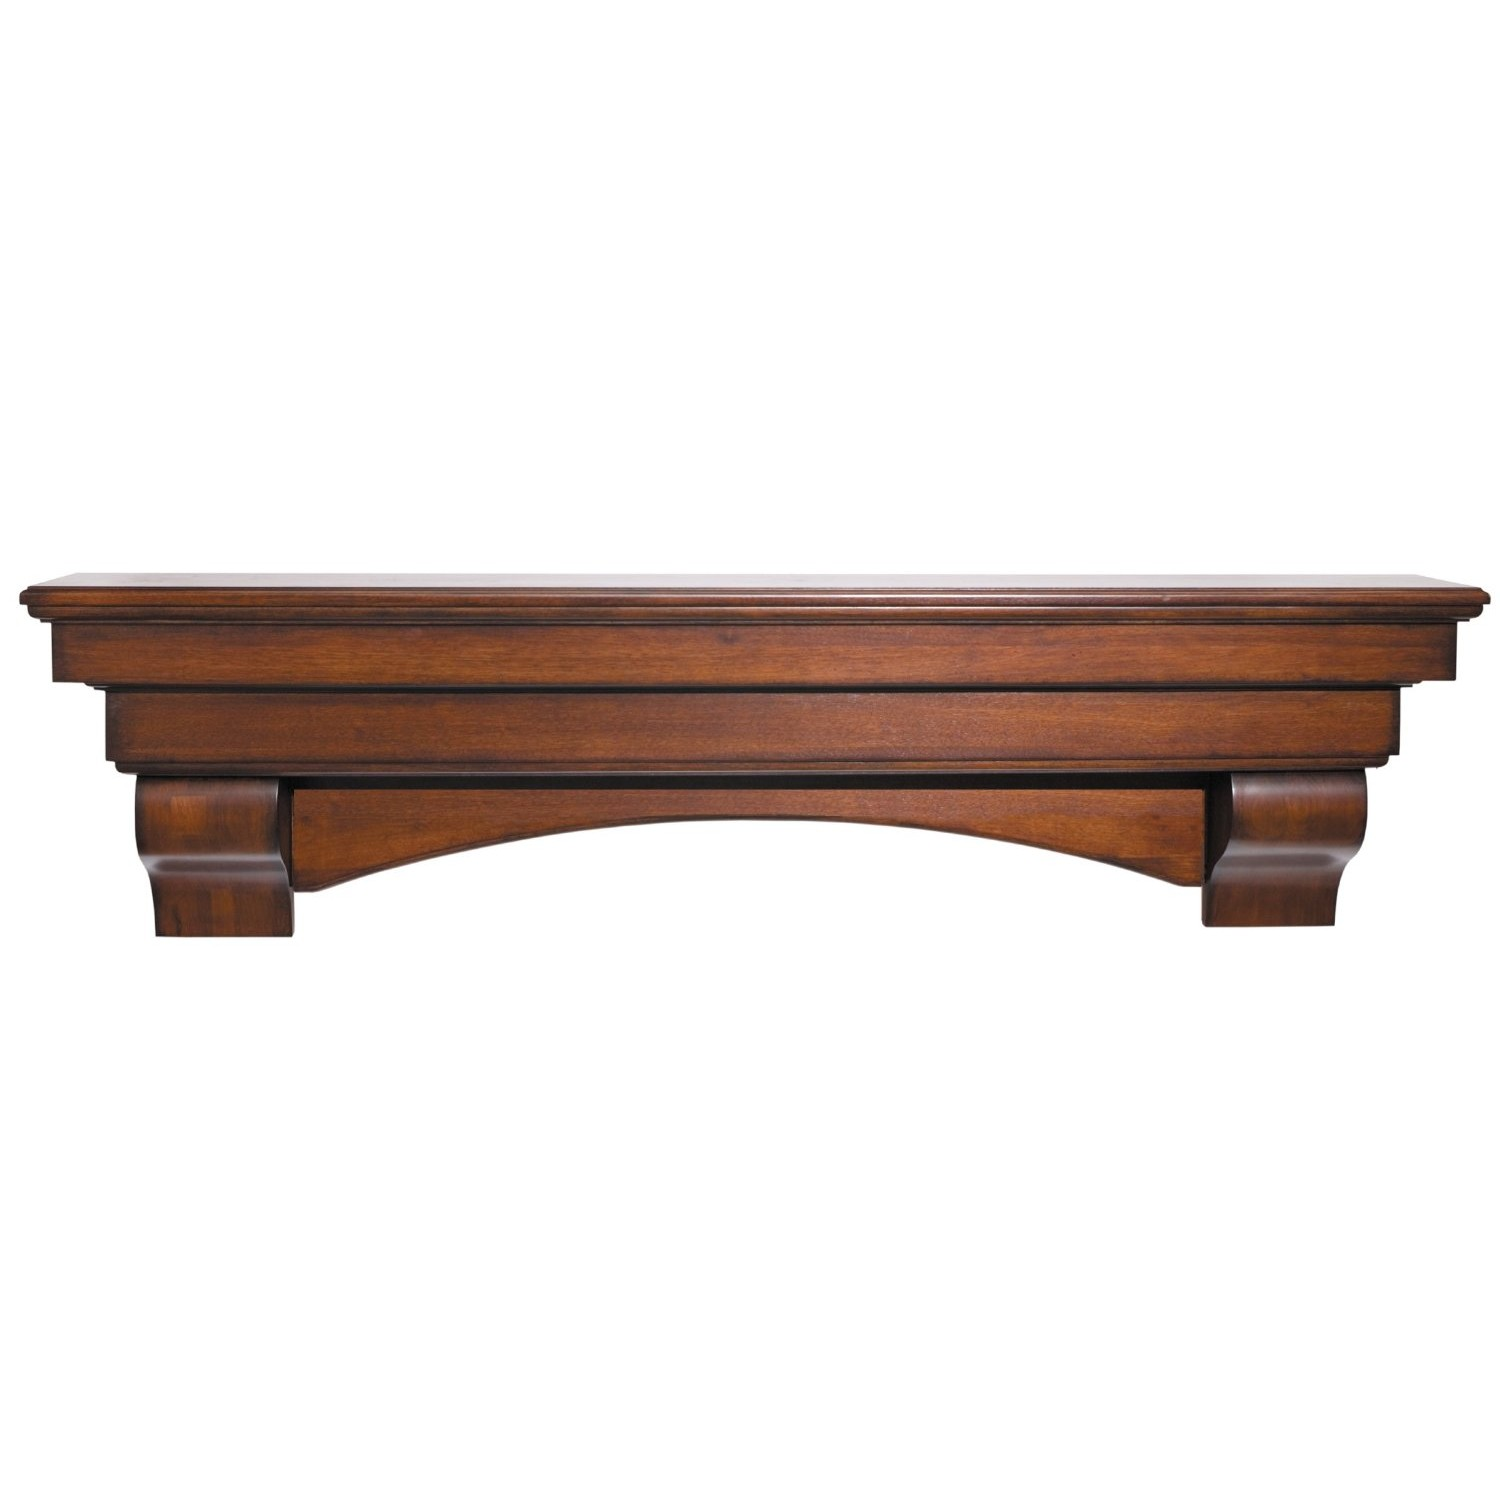 Free mantels cliparts download. Fireplace clipart fireplace mantle